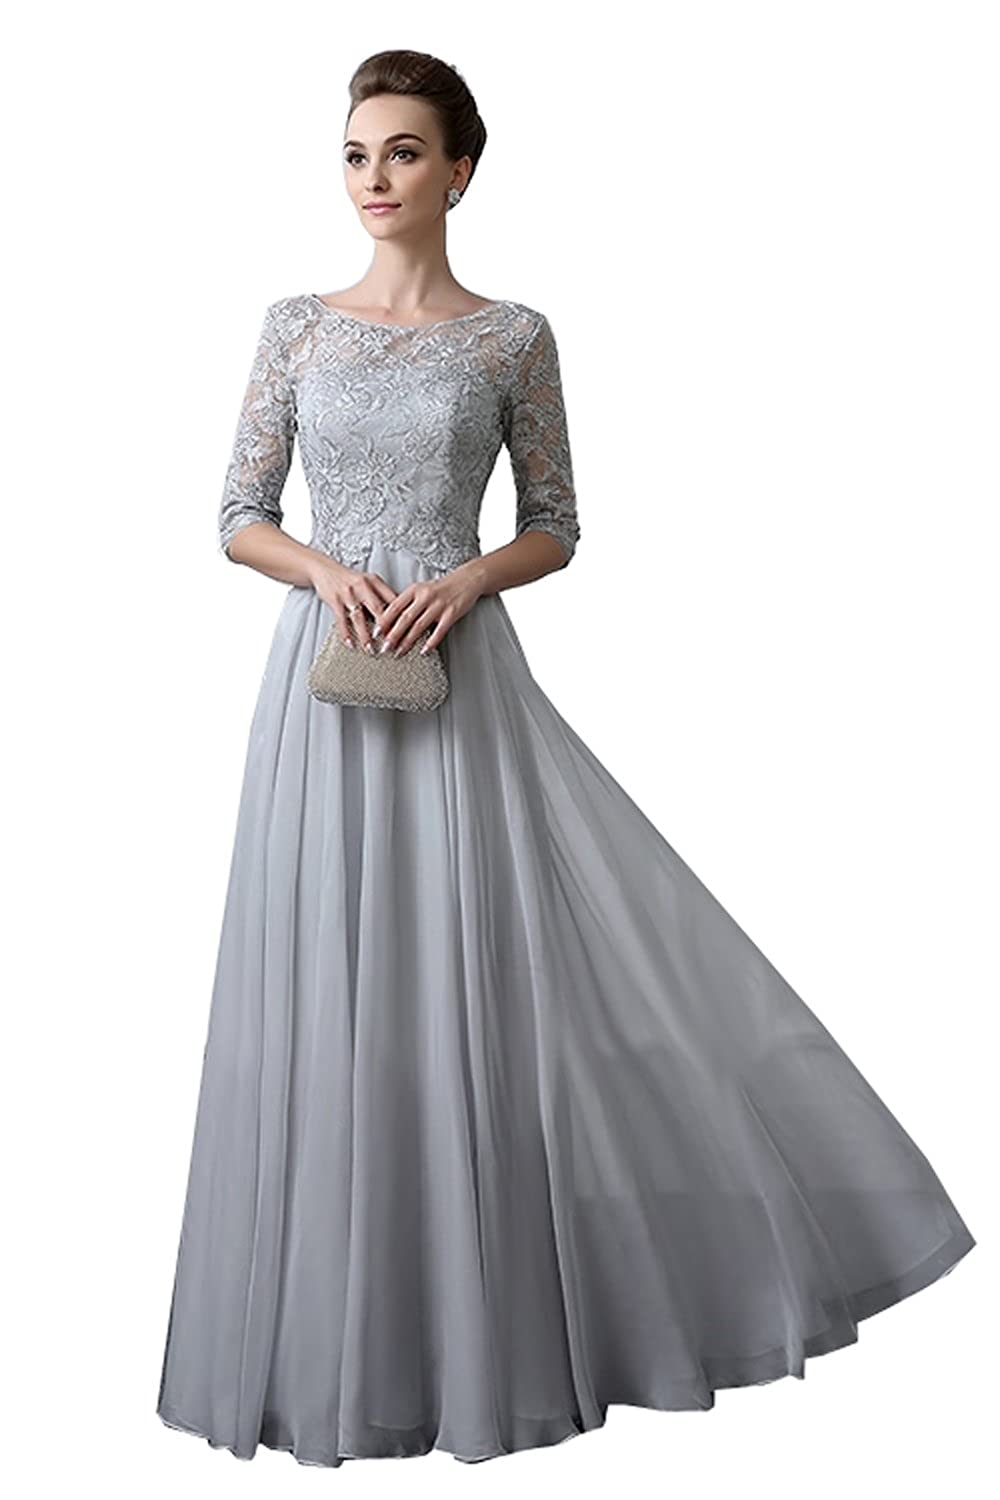 Kelaixiang Light Grey Womens Mother of The Groom Dresses Full Length Half Sleeves